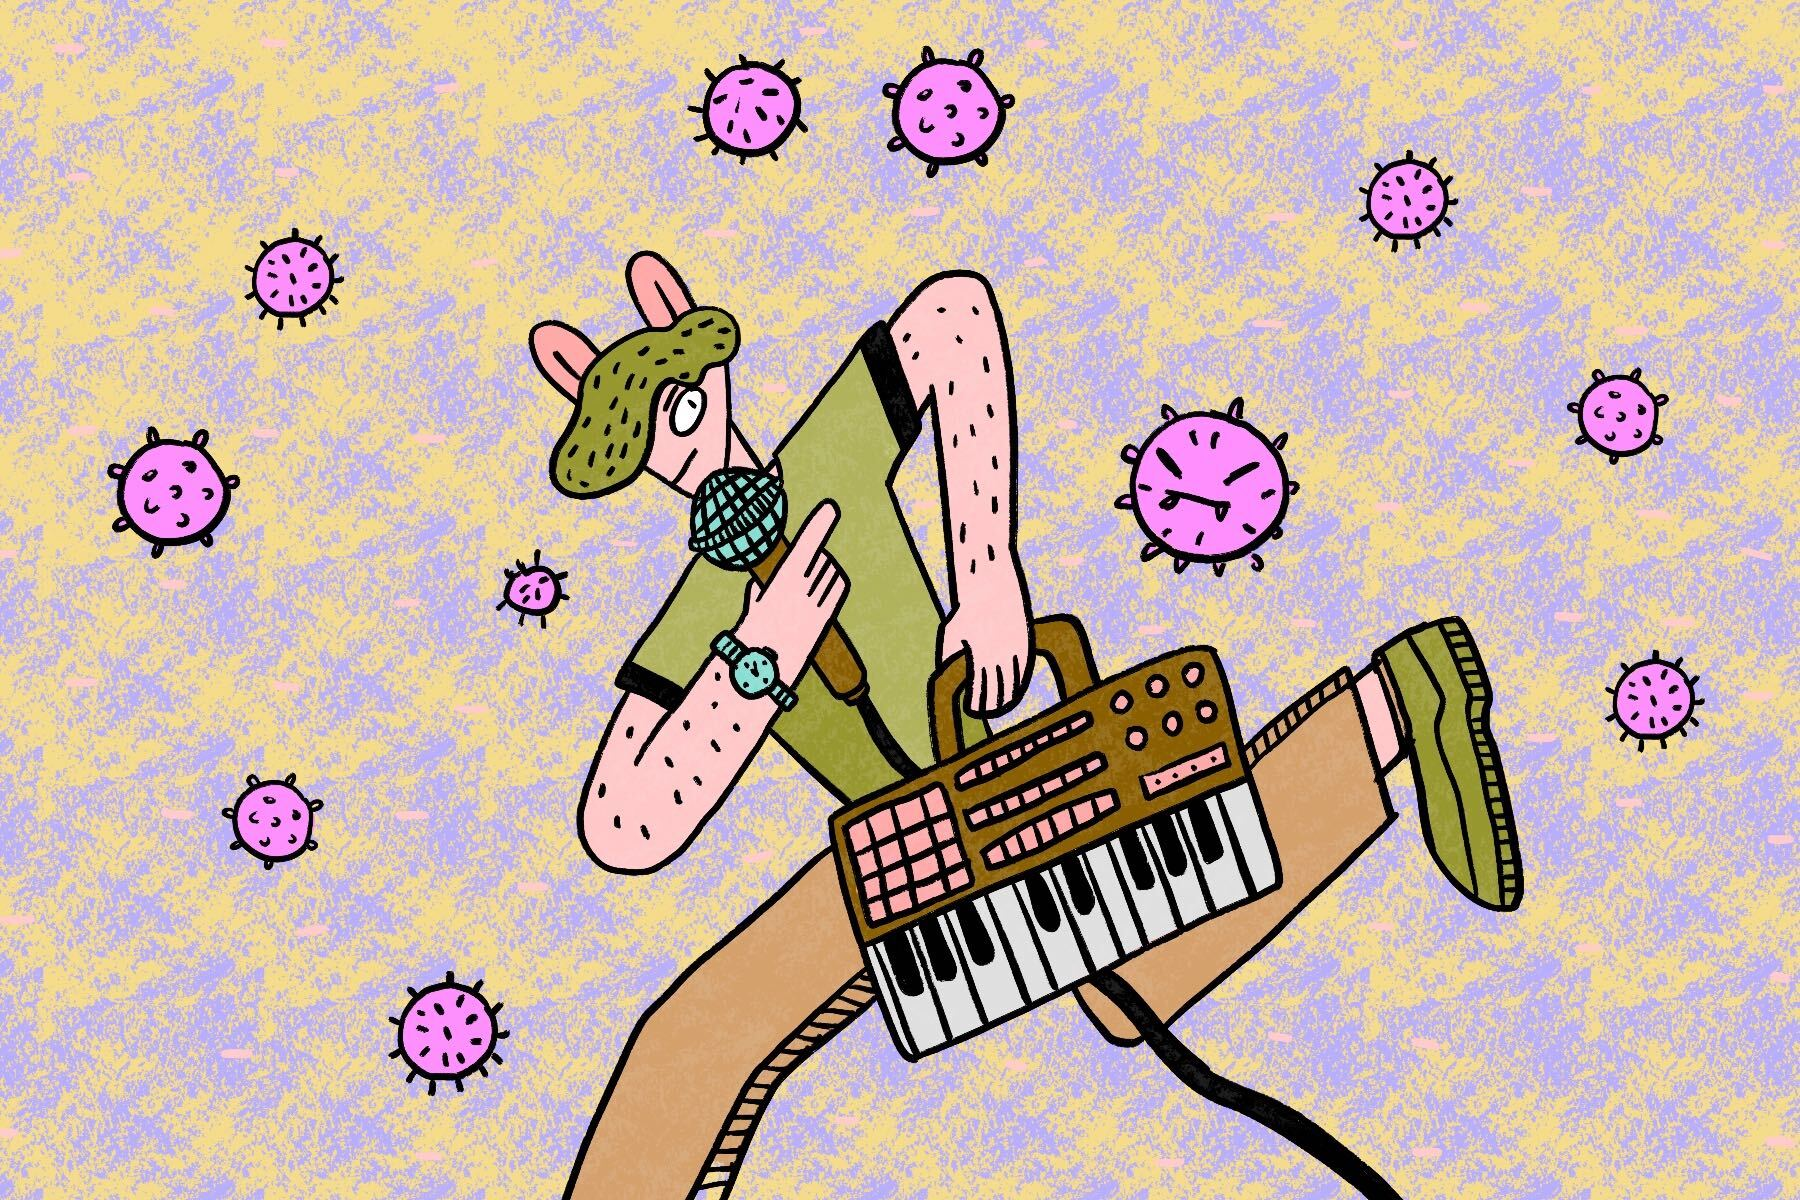 In an article about COVID-19 and the music industry, an illustration by Yao Jian of someone with a keyboard and microphone